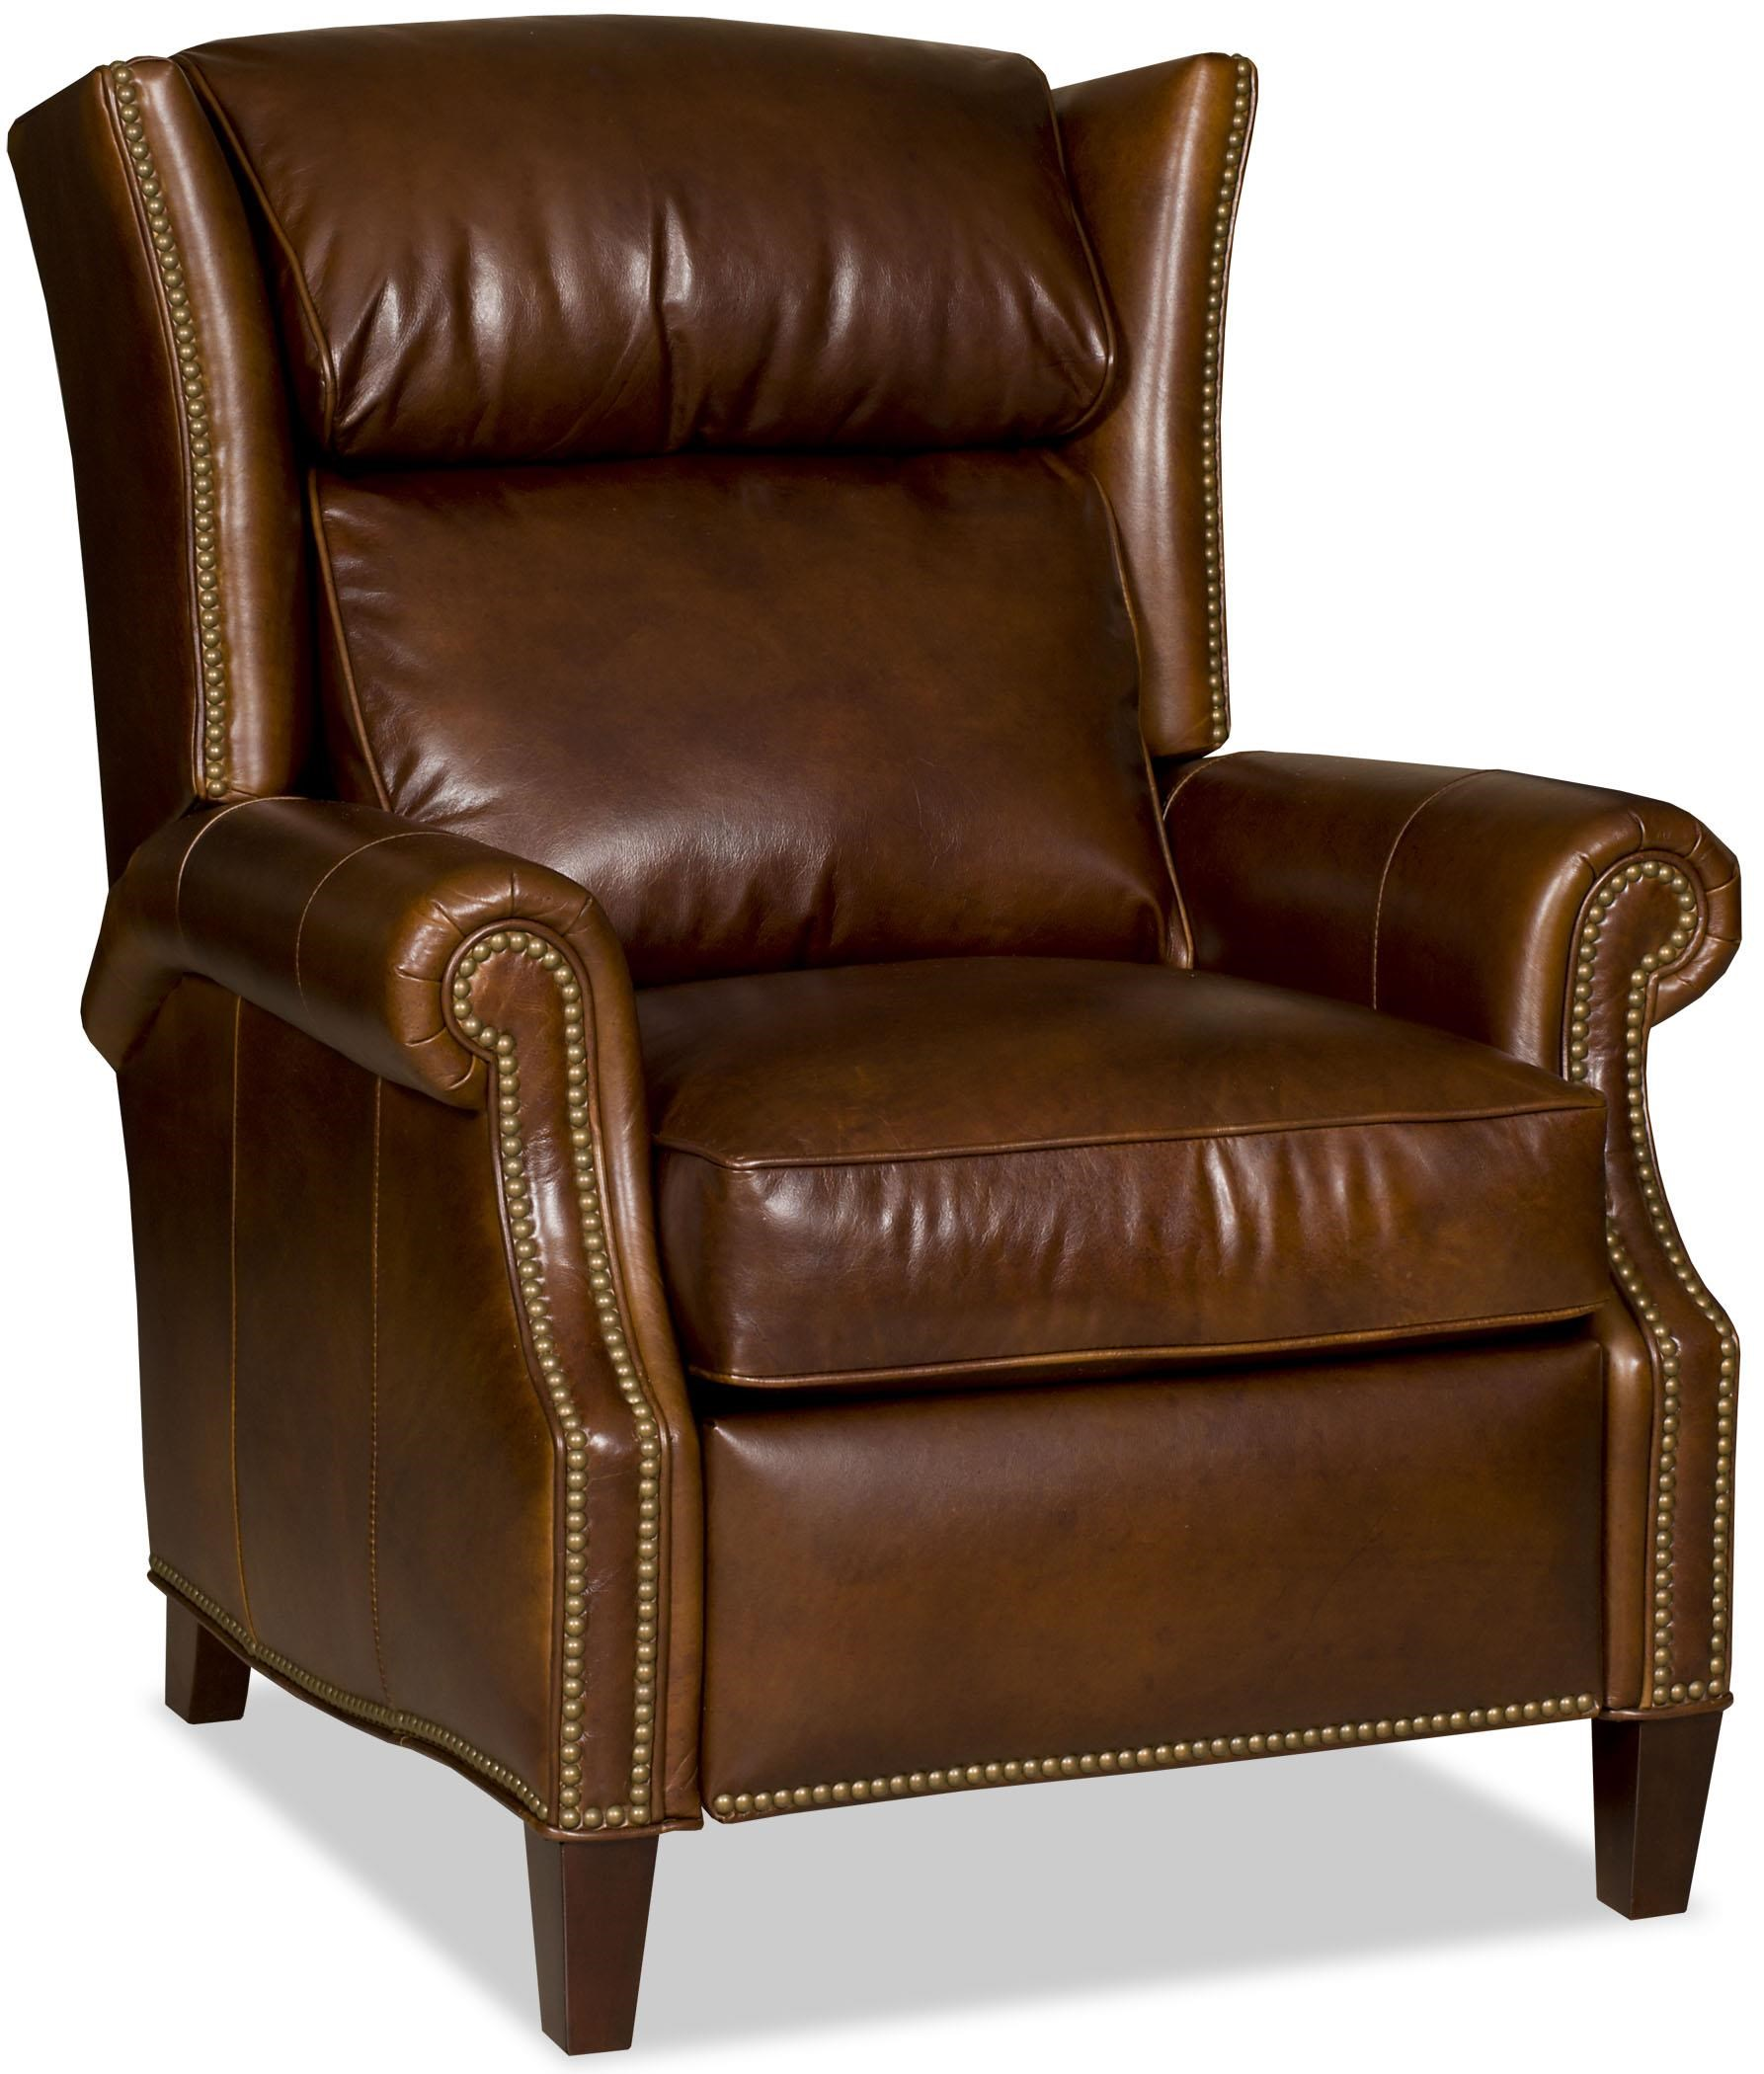 Bradington Young Chairs That ReclinePower High Leg